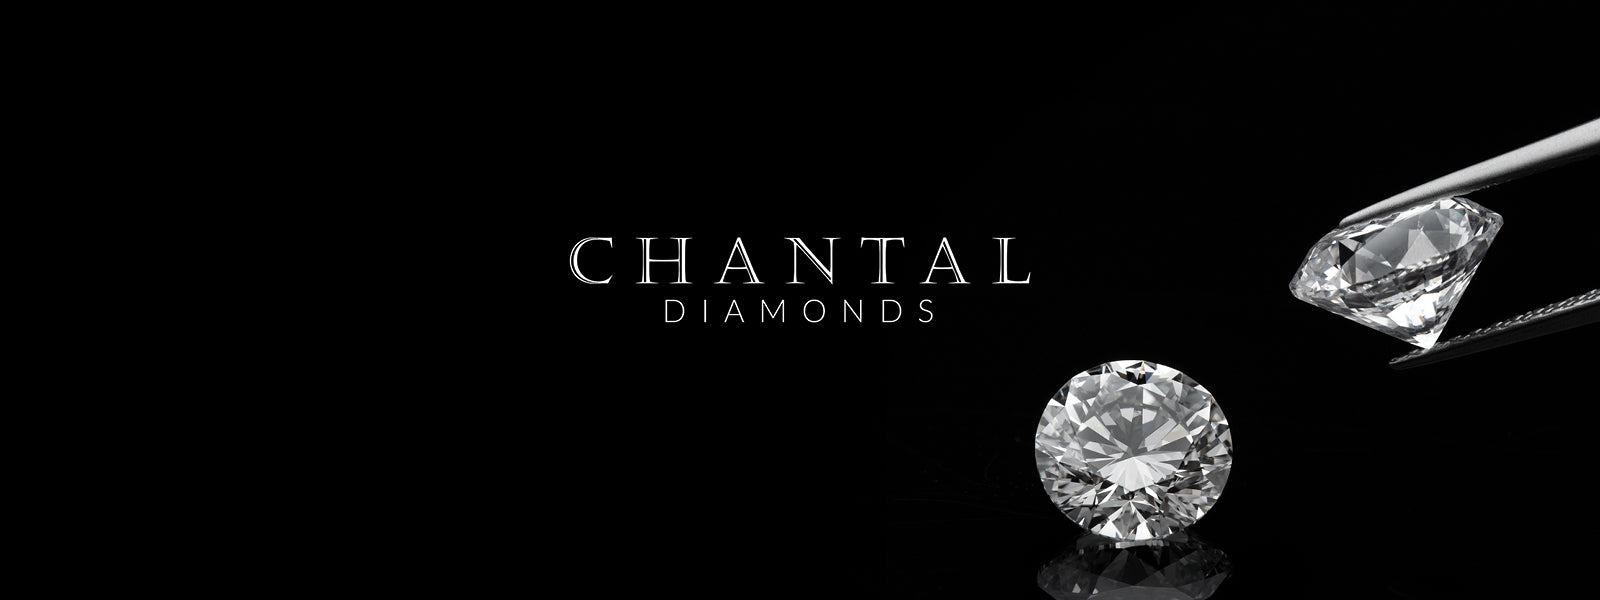 Chantal Diamonds - Brian Jacobson Diamond Jeweller. Engagement, Proposal, and Wedding Rings. Dublin Ireland